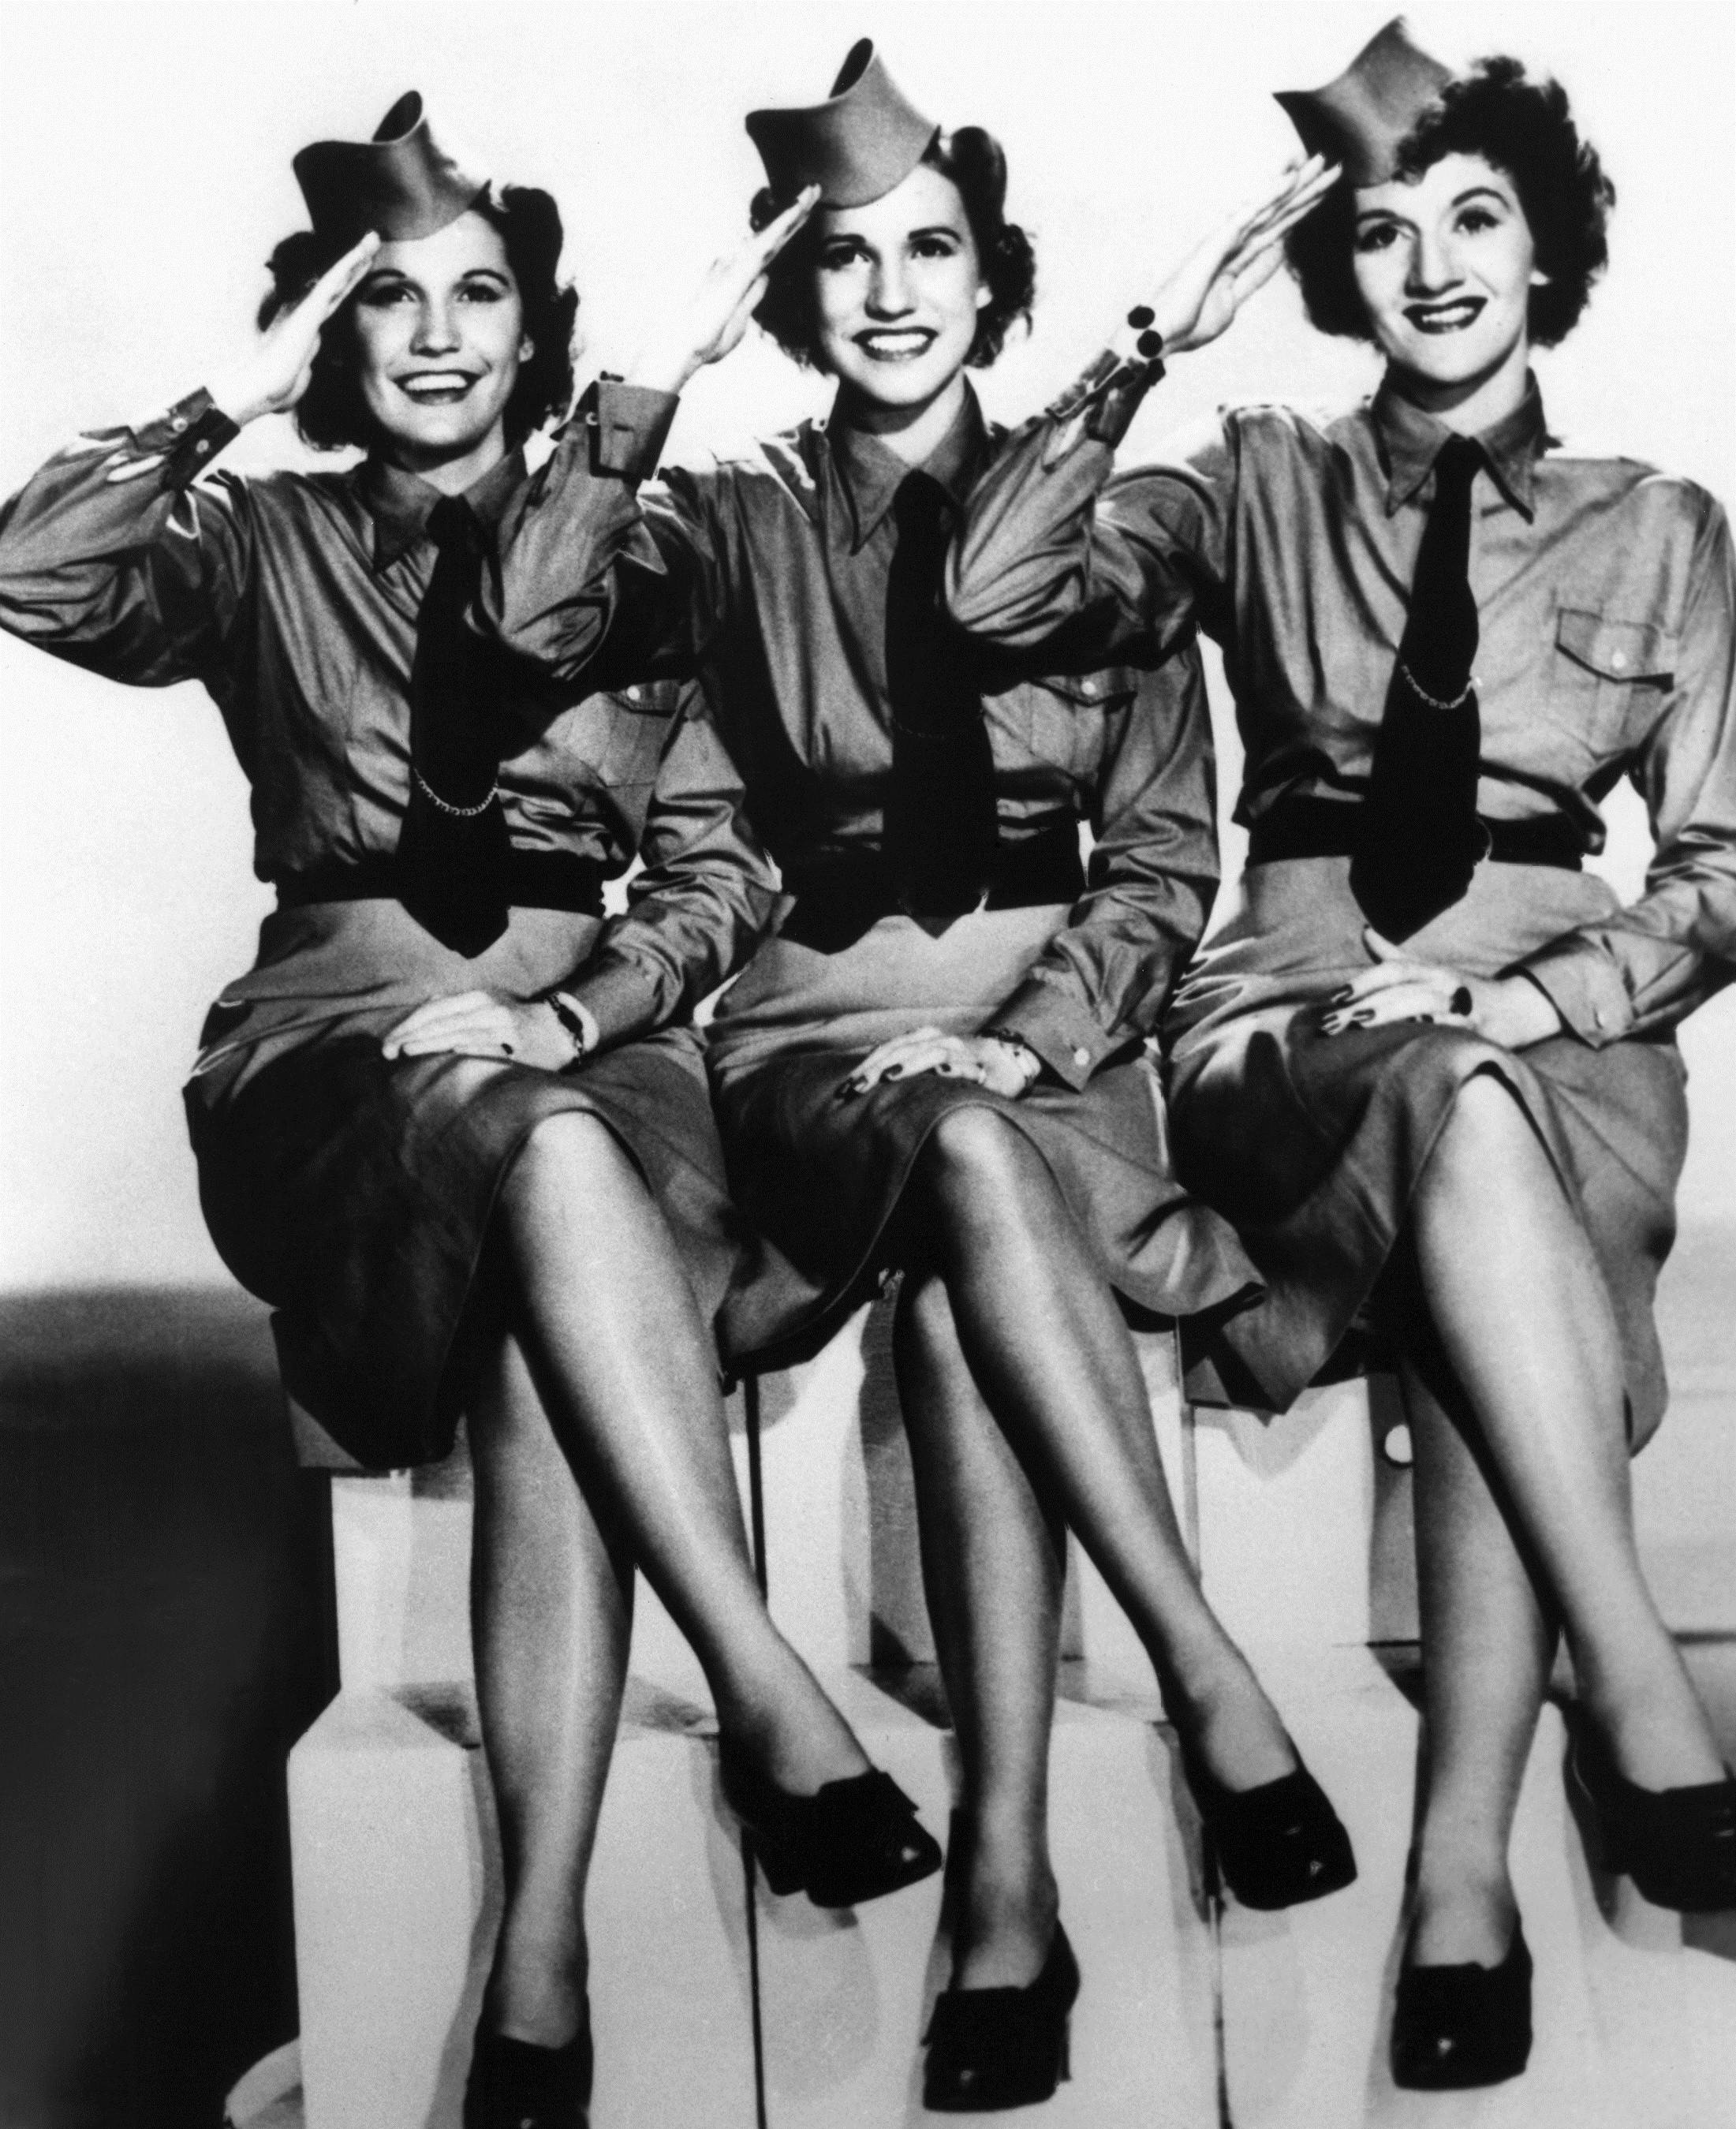 In the 1940s, Maxene, Patty and LaVerne Andrews were popular entertainers.